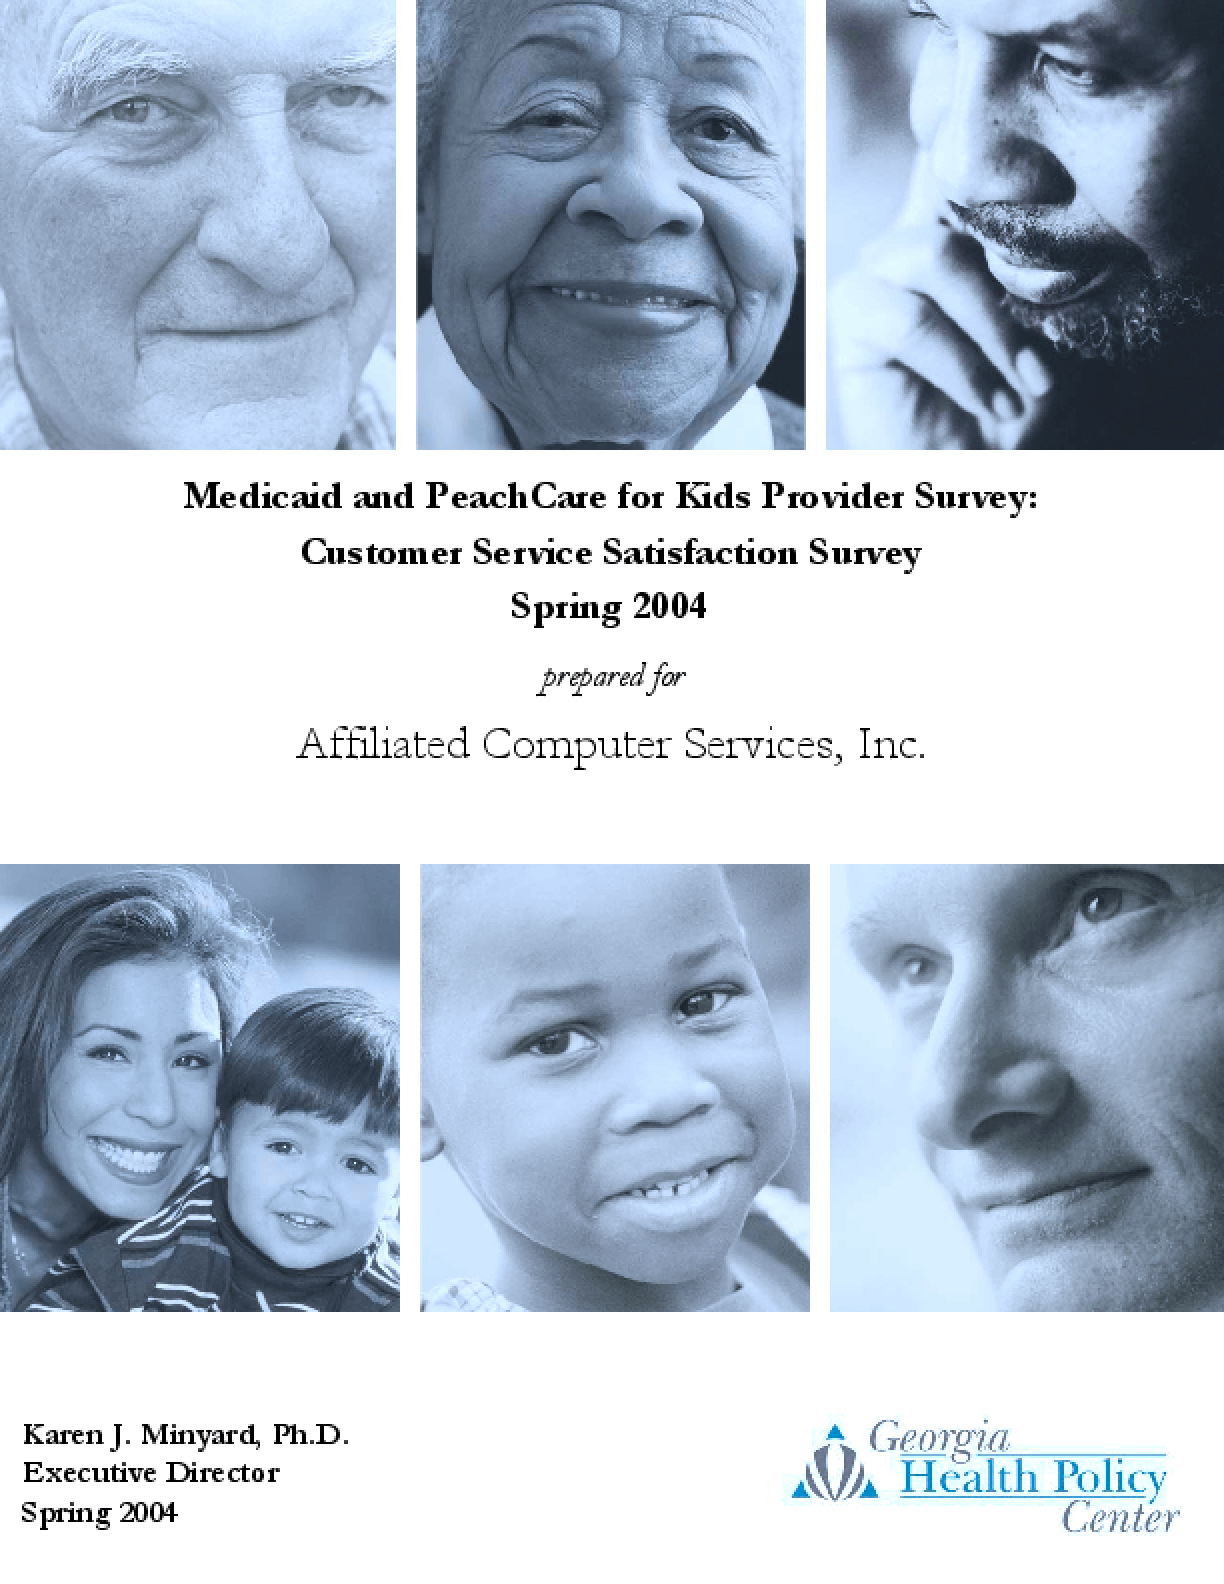 Medicaid and PeachCare for Kids Provider Survey: Customer Service Satisfaction Survey - Spring 2004